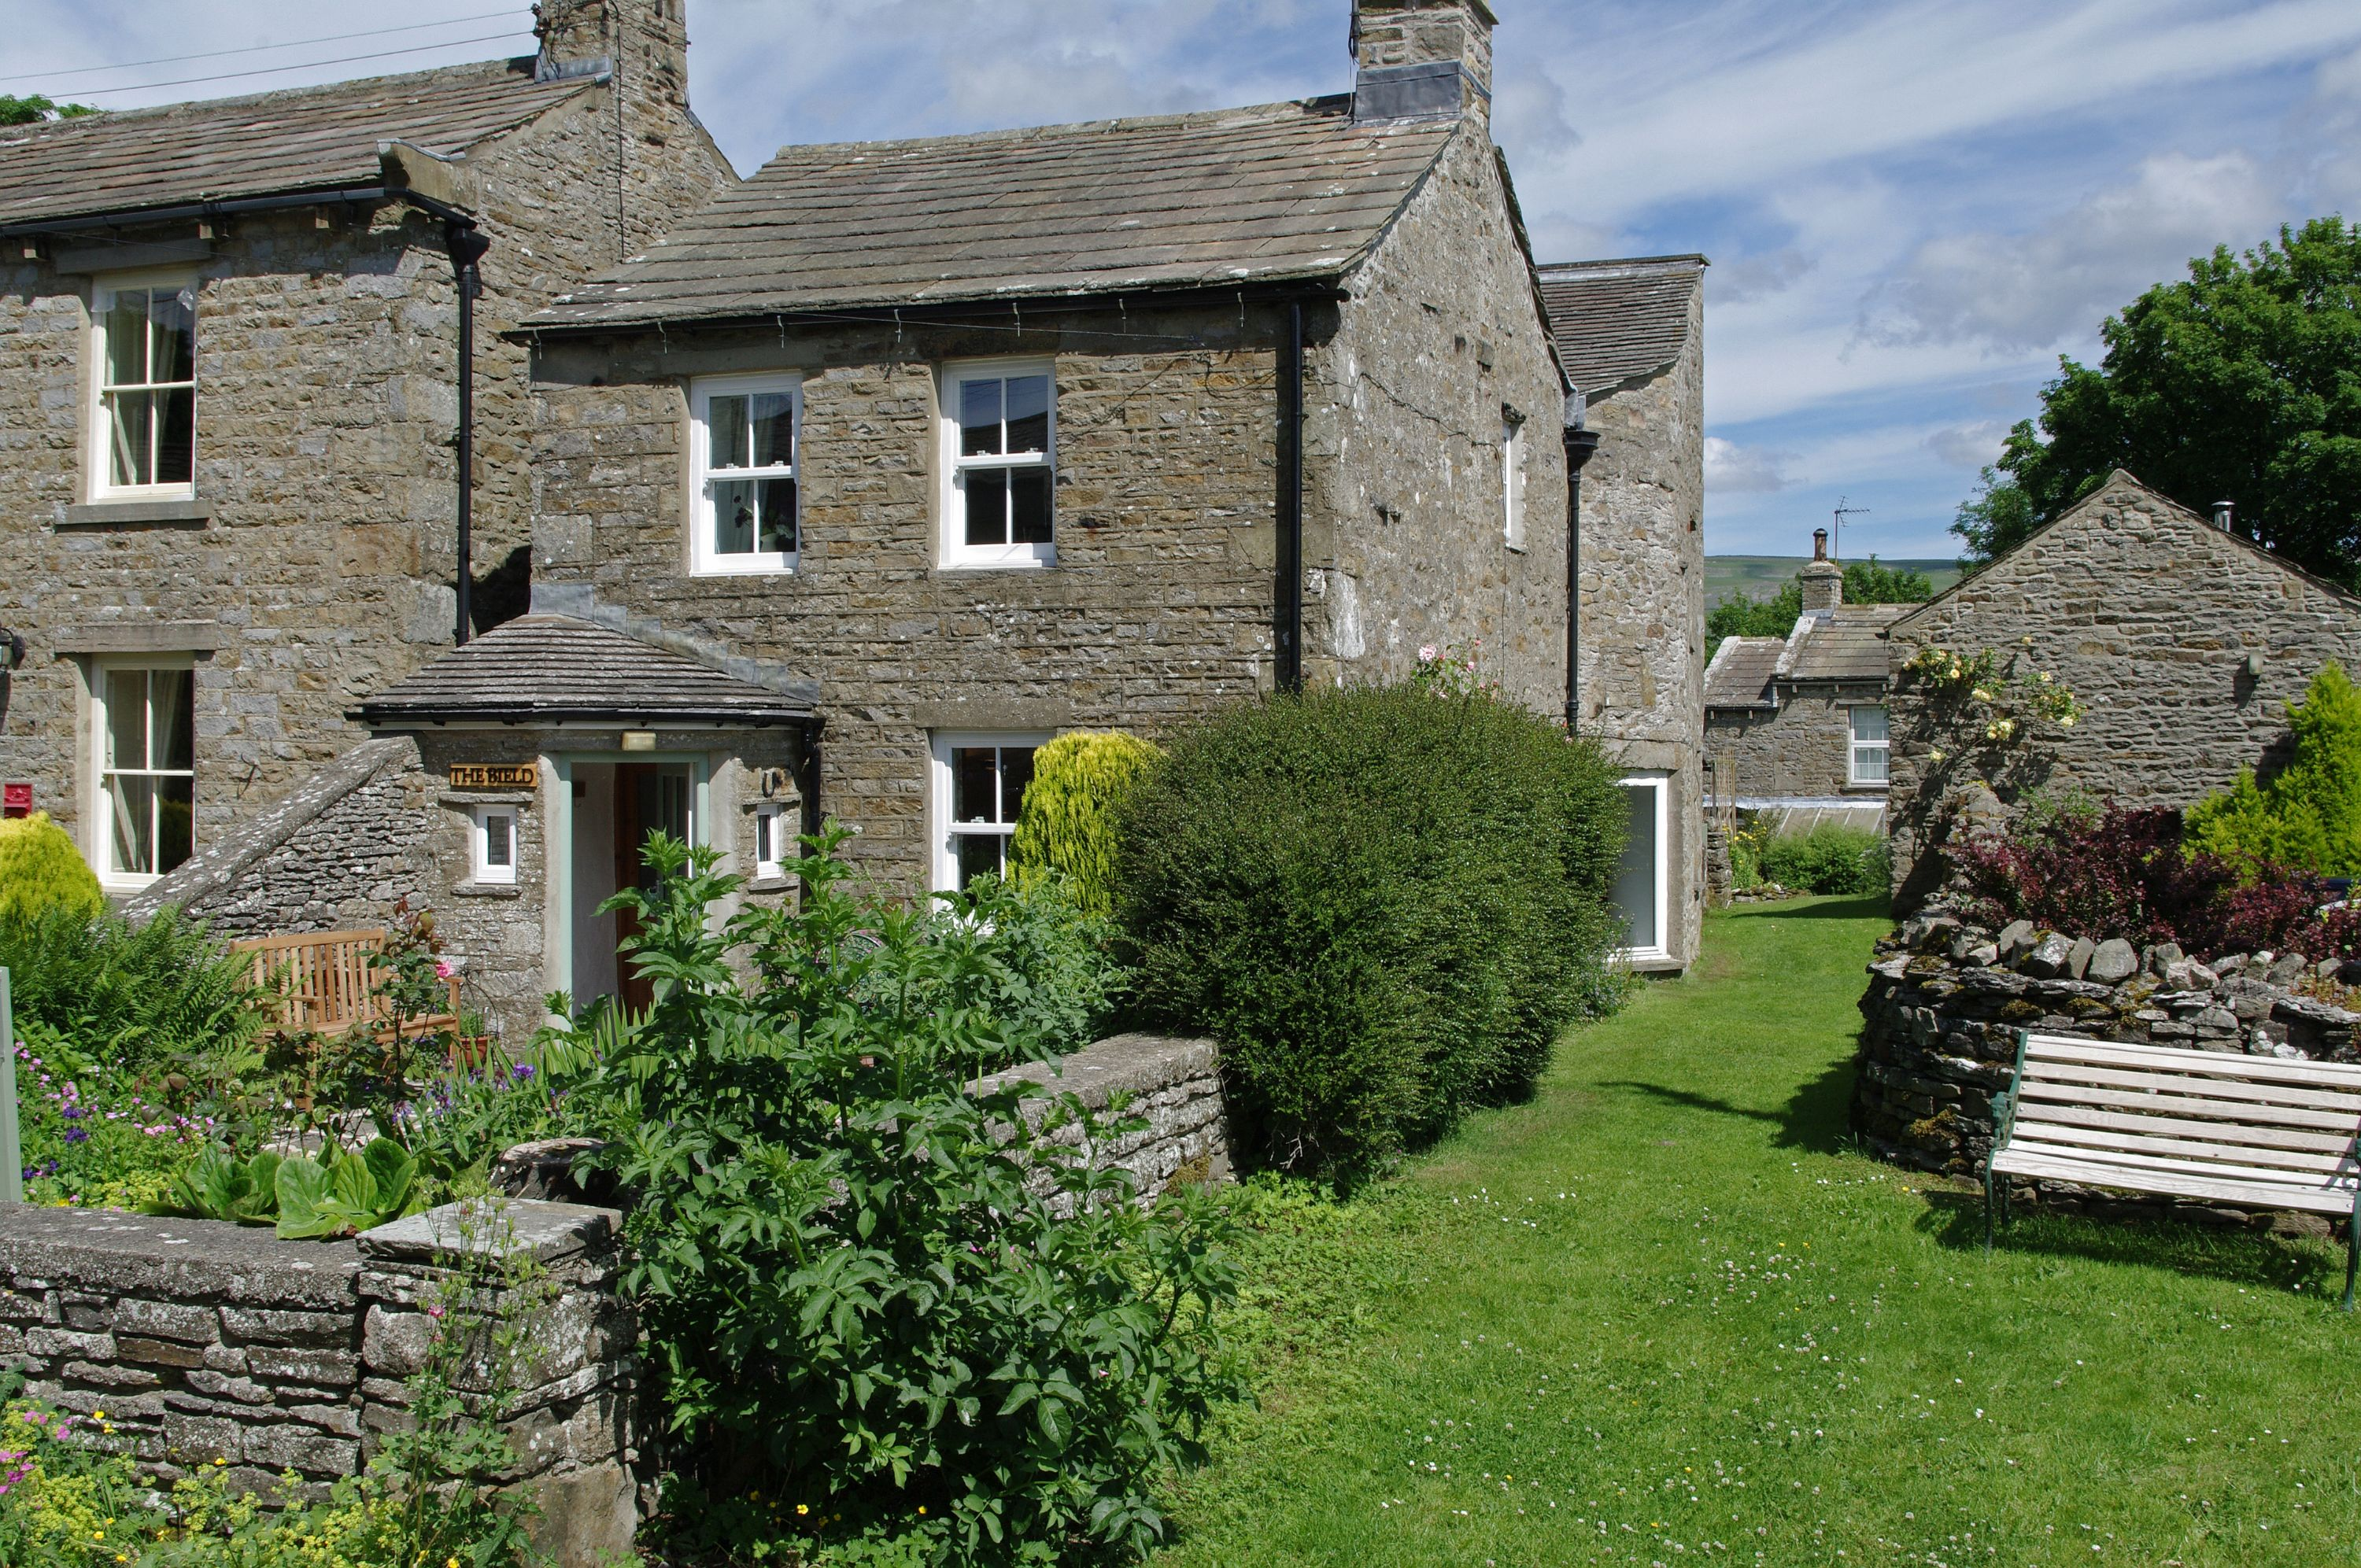 The Bield in Thornton Rust, Wensleydale in the Yorkshire Dales